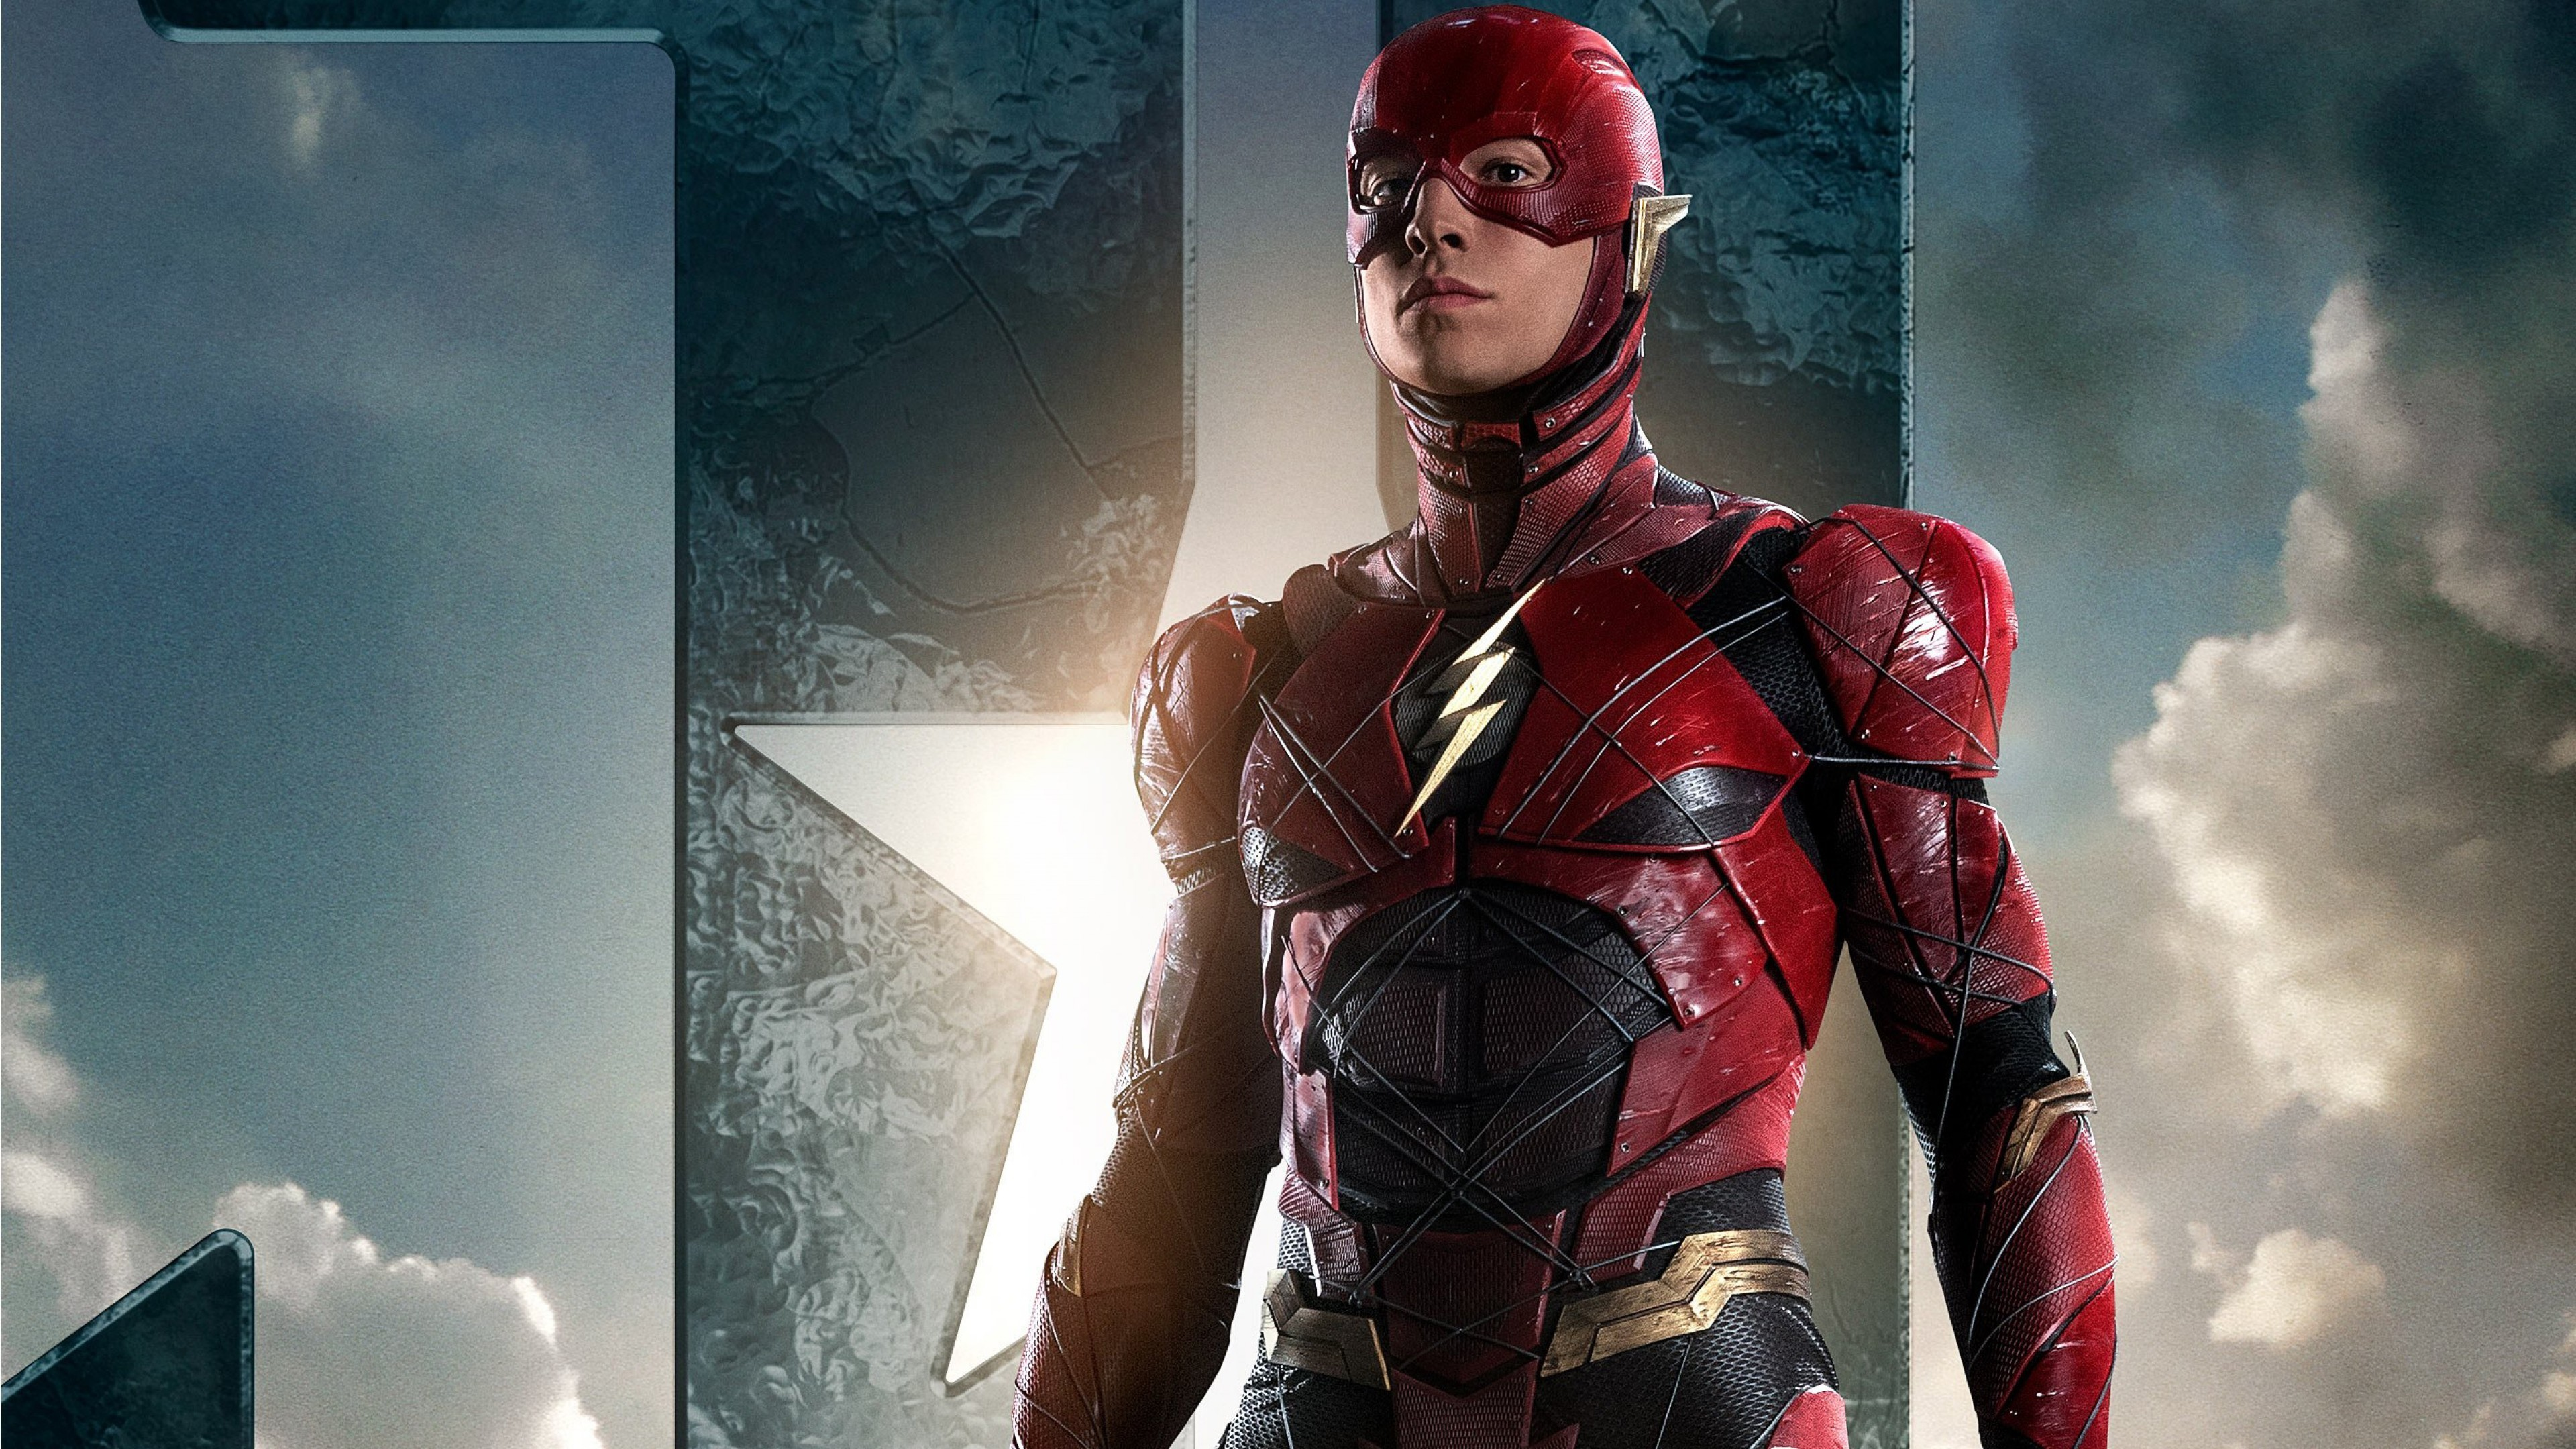 Wallpaper Justice League, The Flash, 4k, Movies #15016